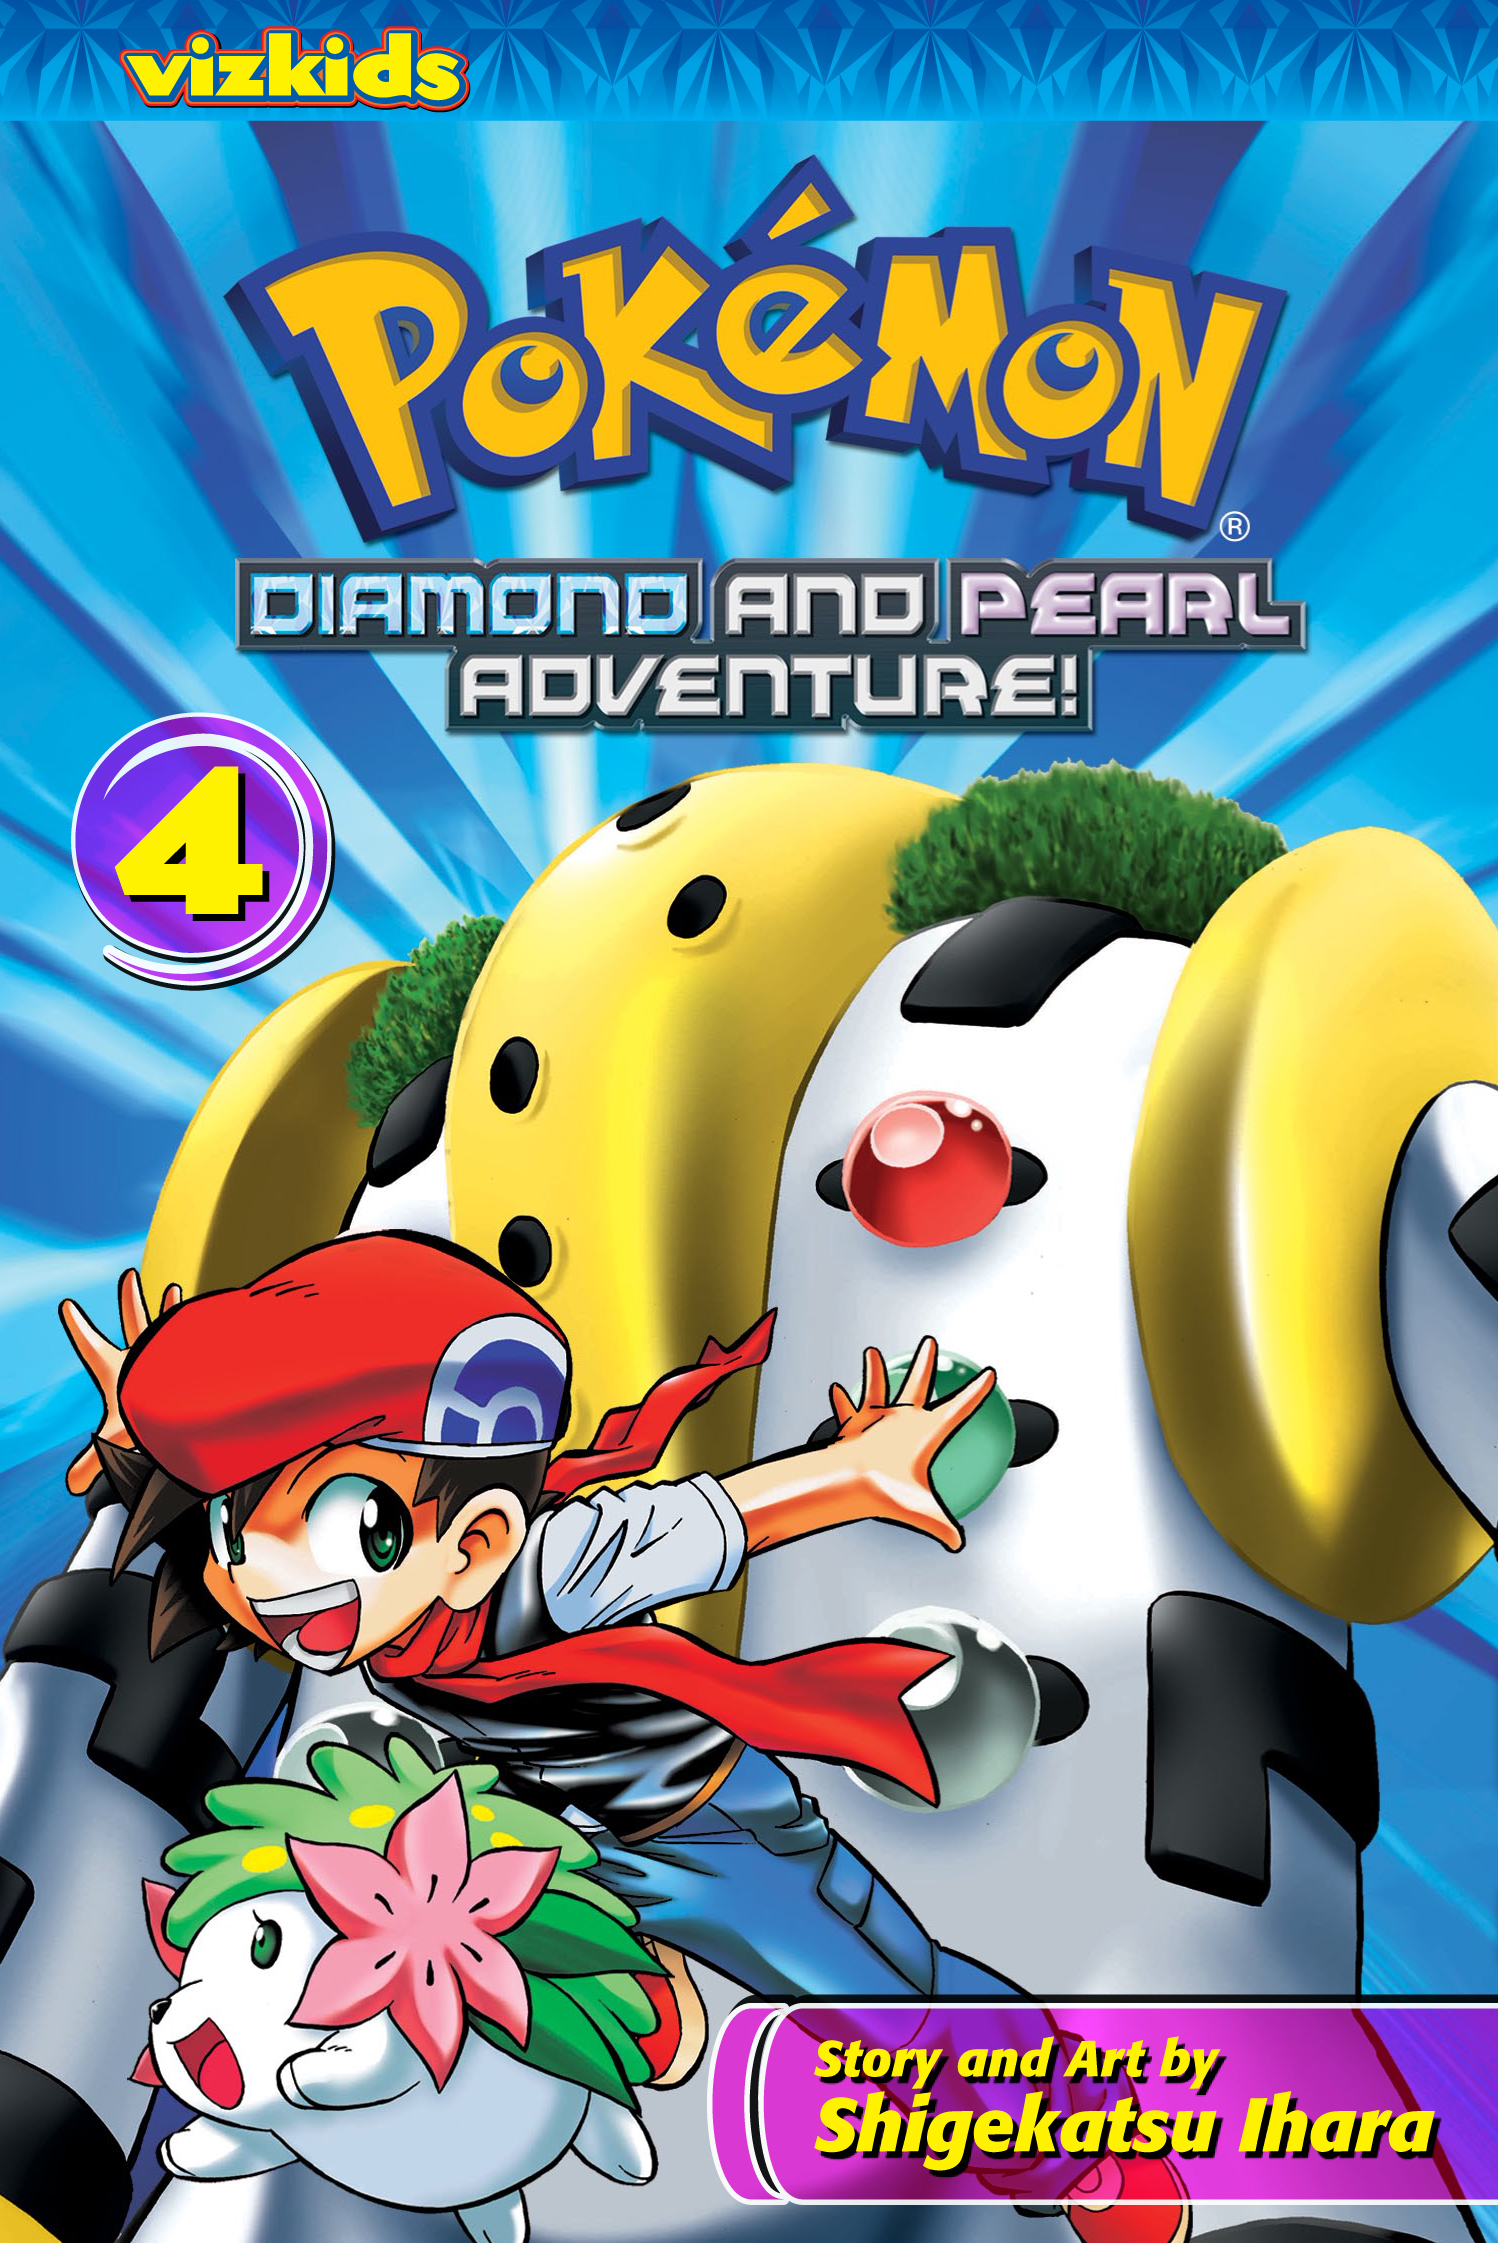 pokémon diamond and pearl adventure!: volume 4 | pokémon wiki